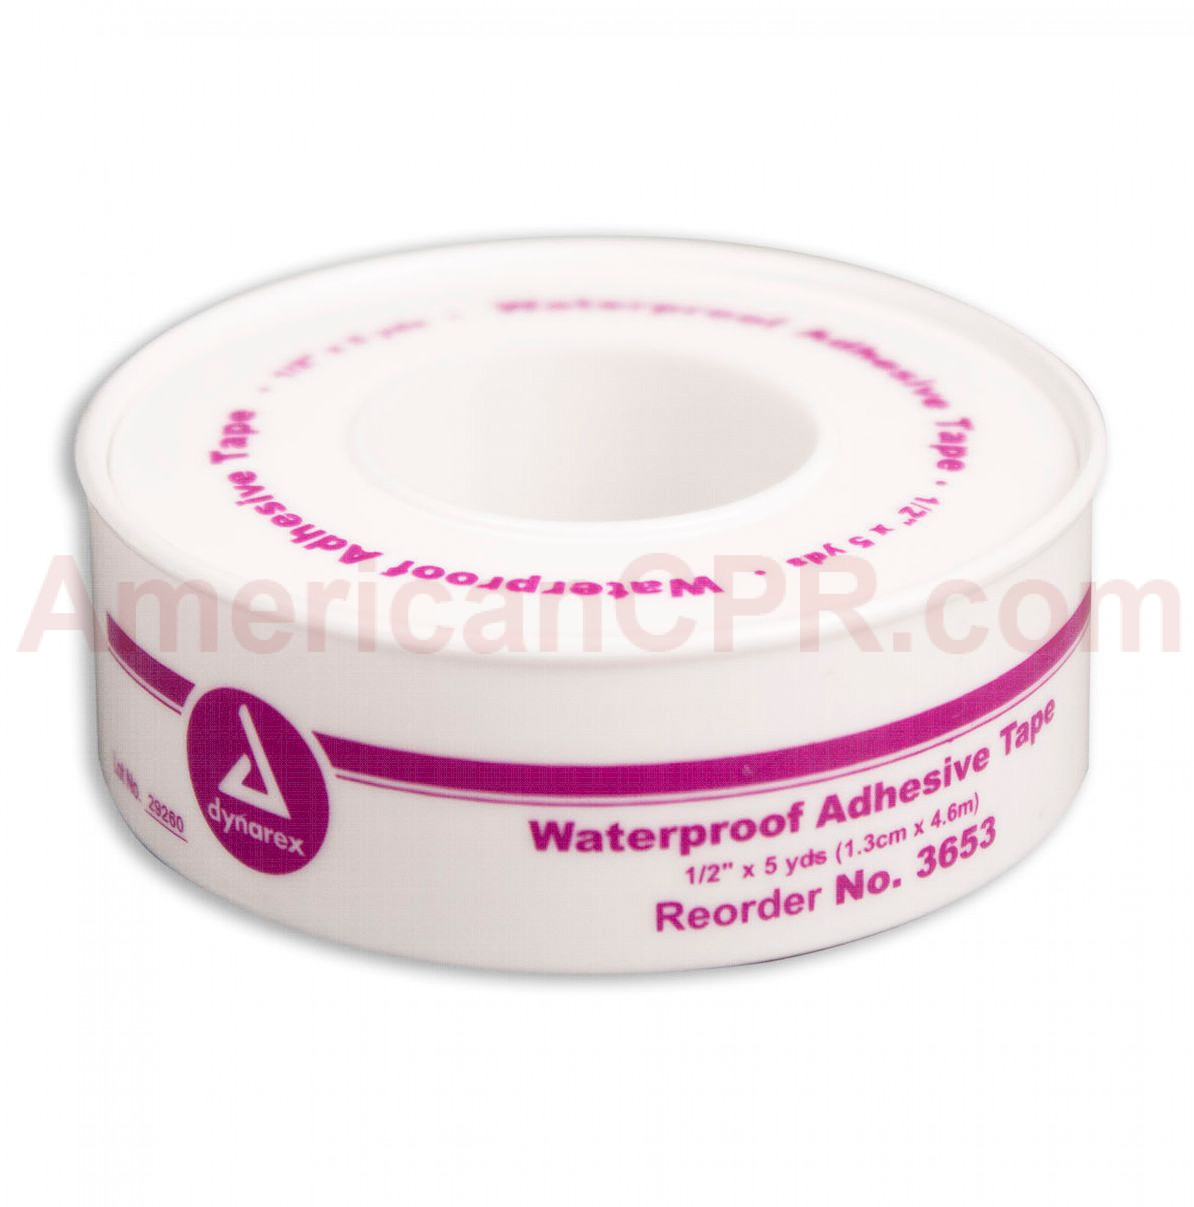 "1/2"" x 5 yd. Waterproof Tape - Plastic Spool - 1 Each - Dynarex"